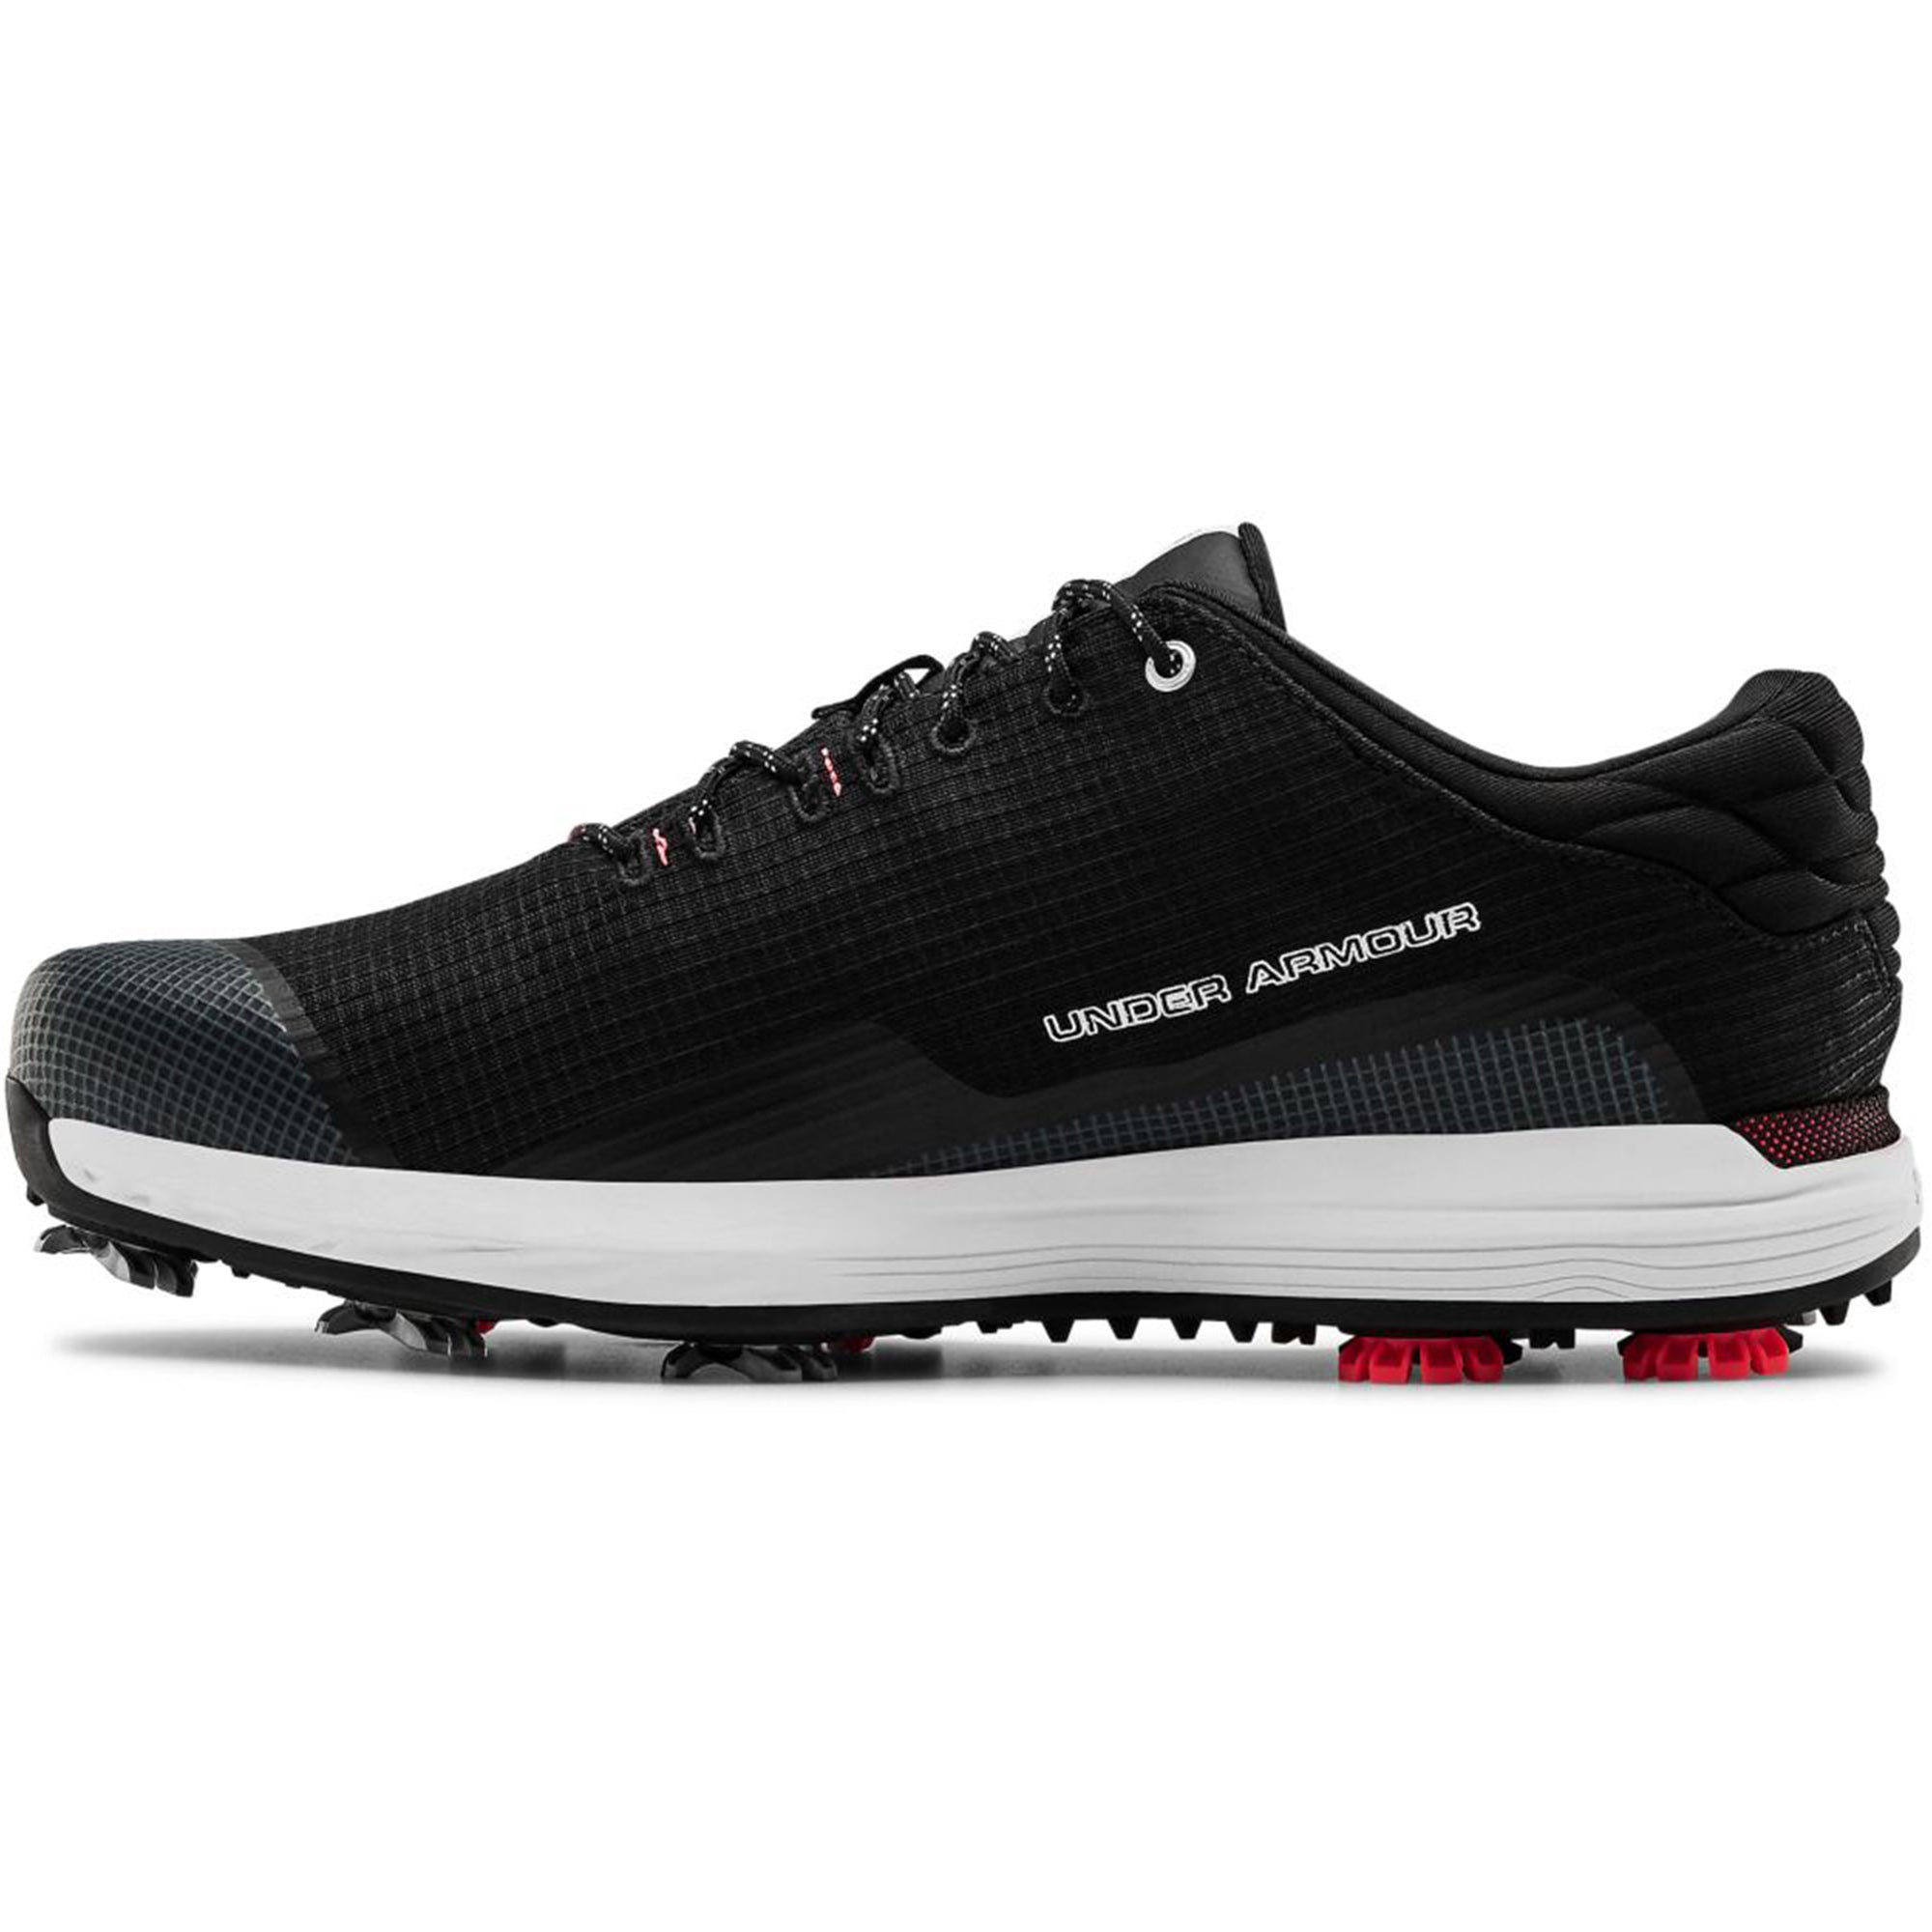 Under Armour HOVR Matchplay TE Golf Shoes 3023246